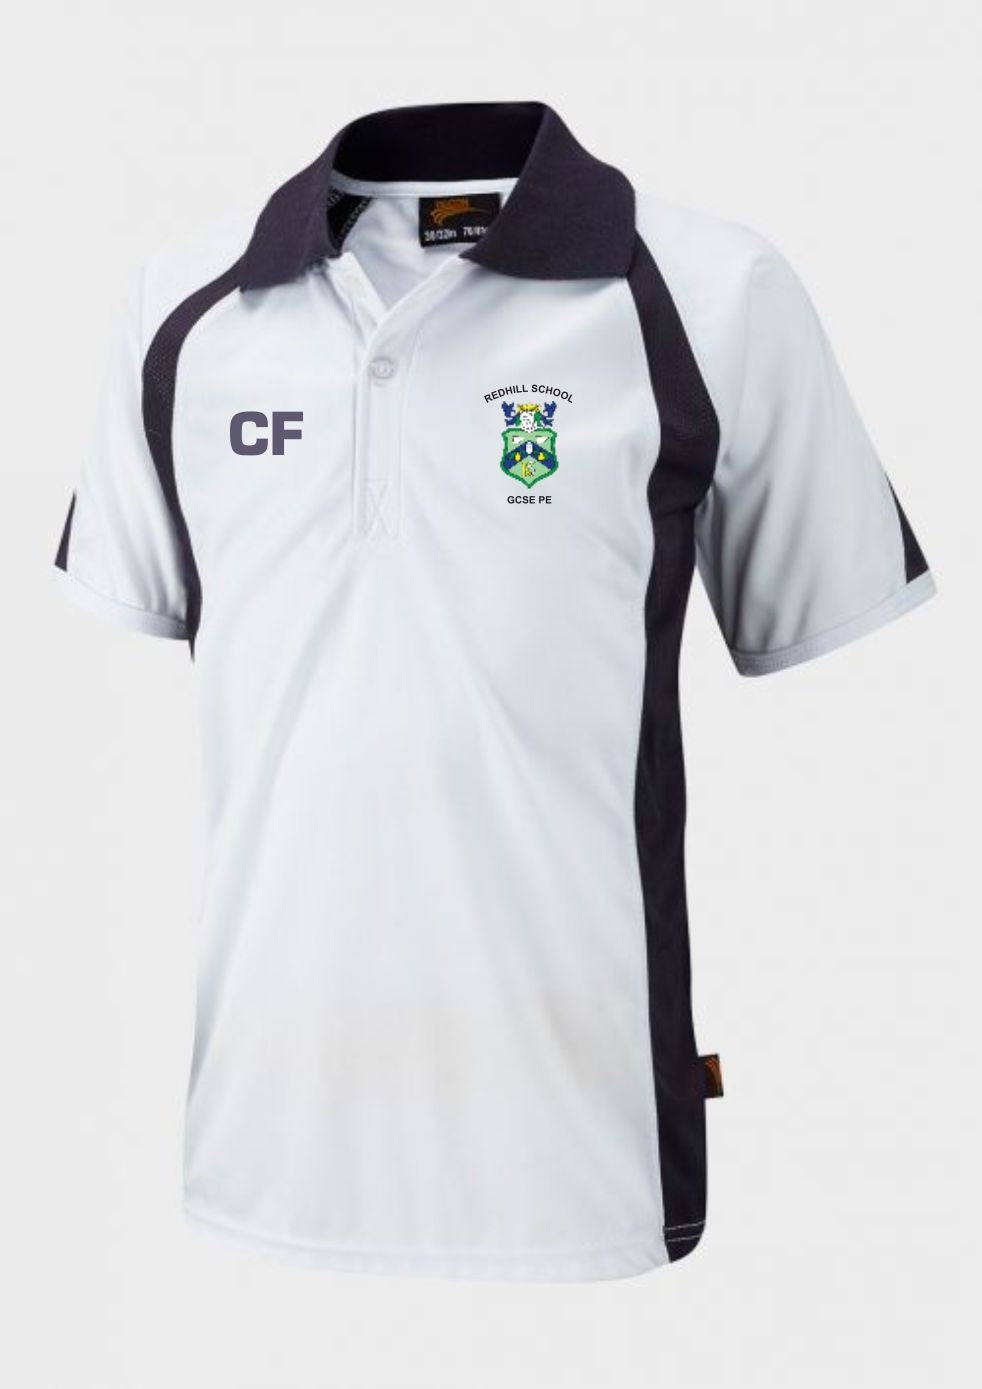 Redhill School G.C.S.E P.E. Polo Top [RHS]